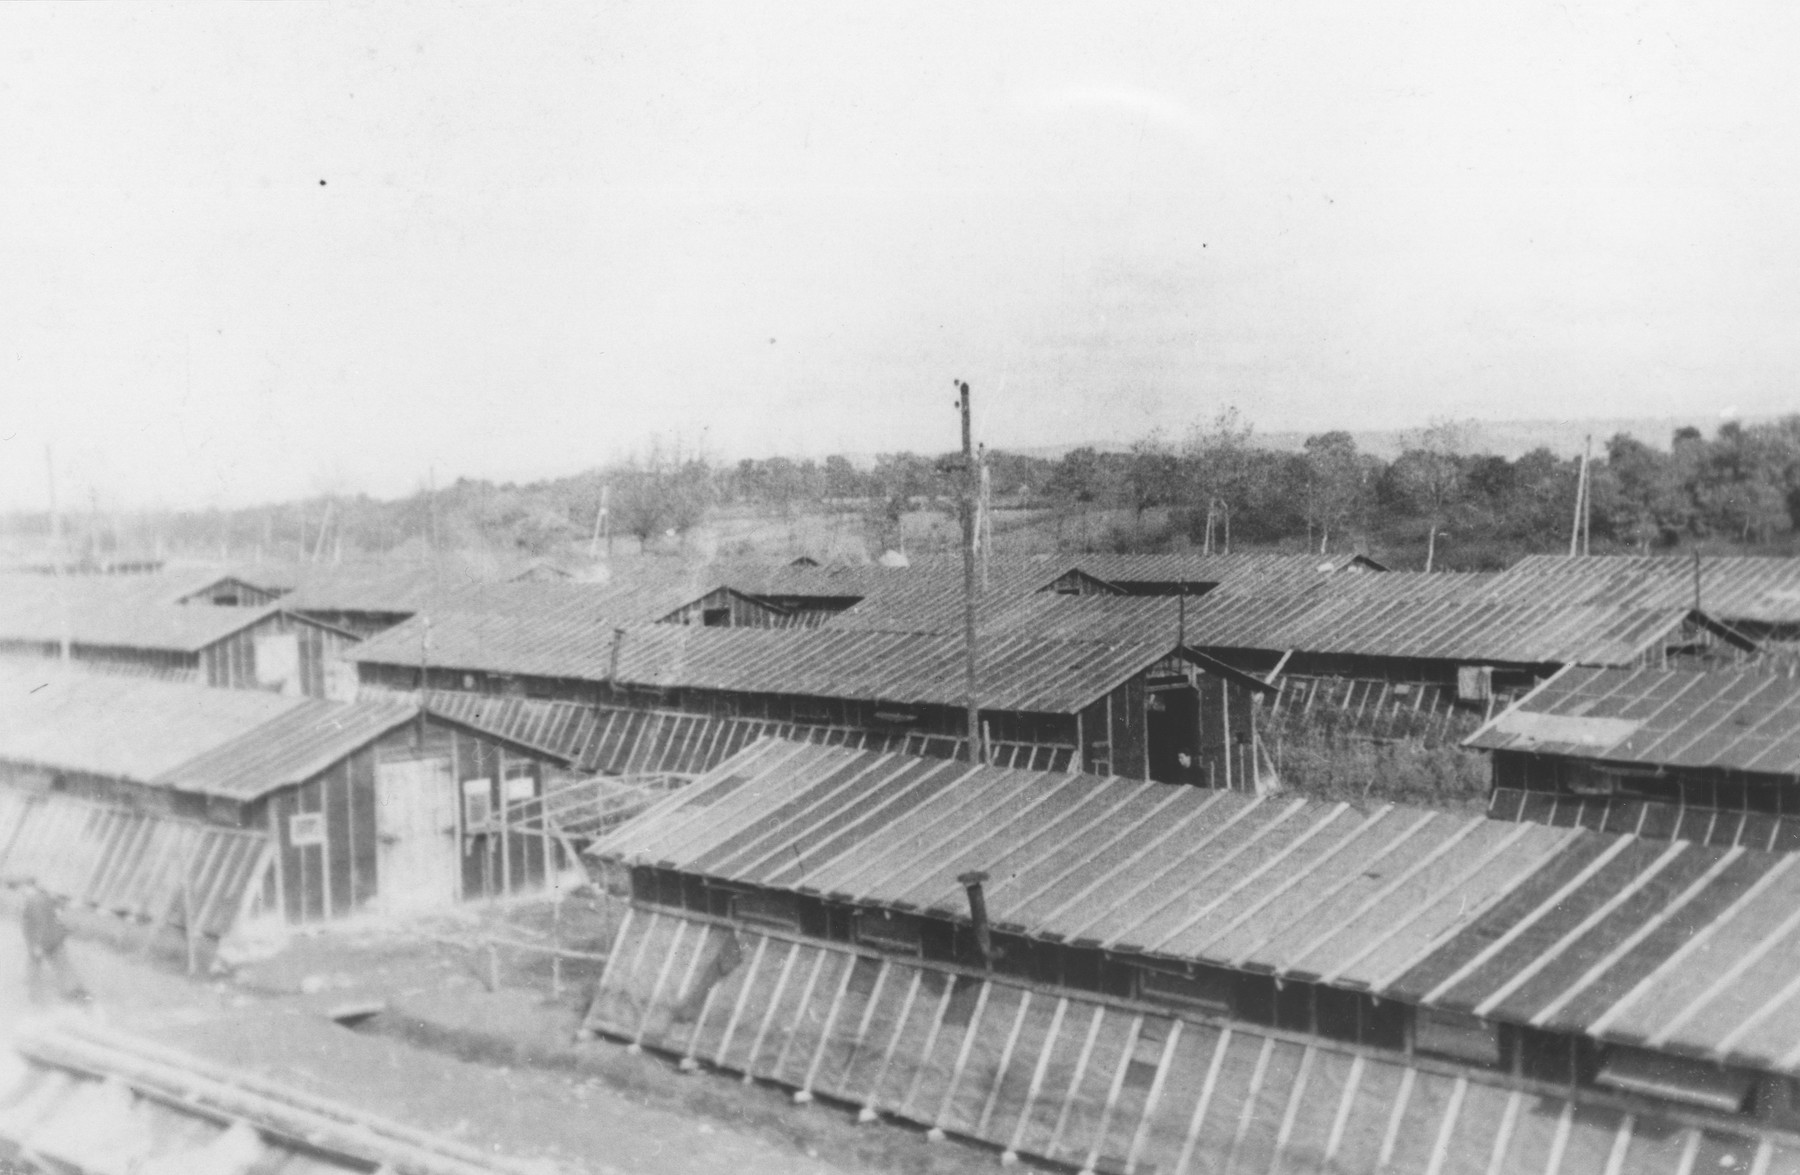 View of the barracks in the Gurs internment camp.